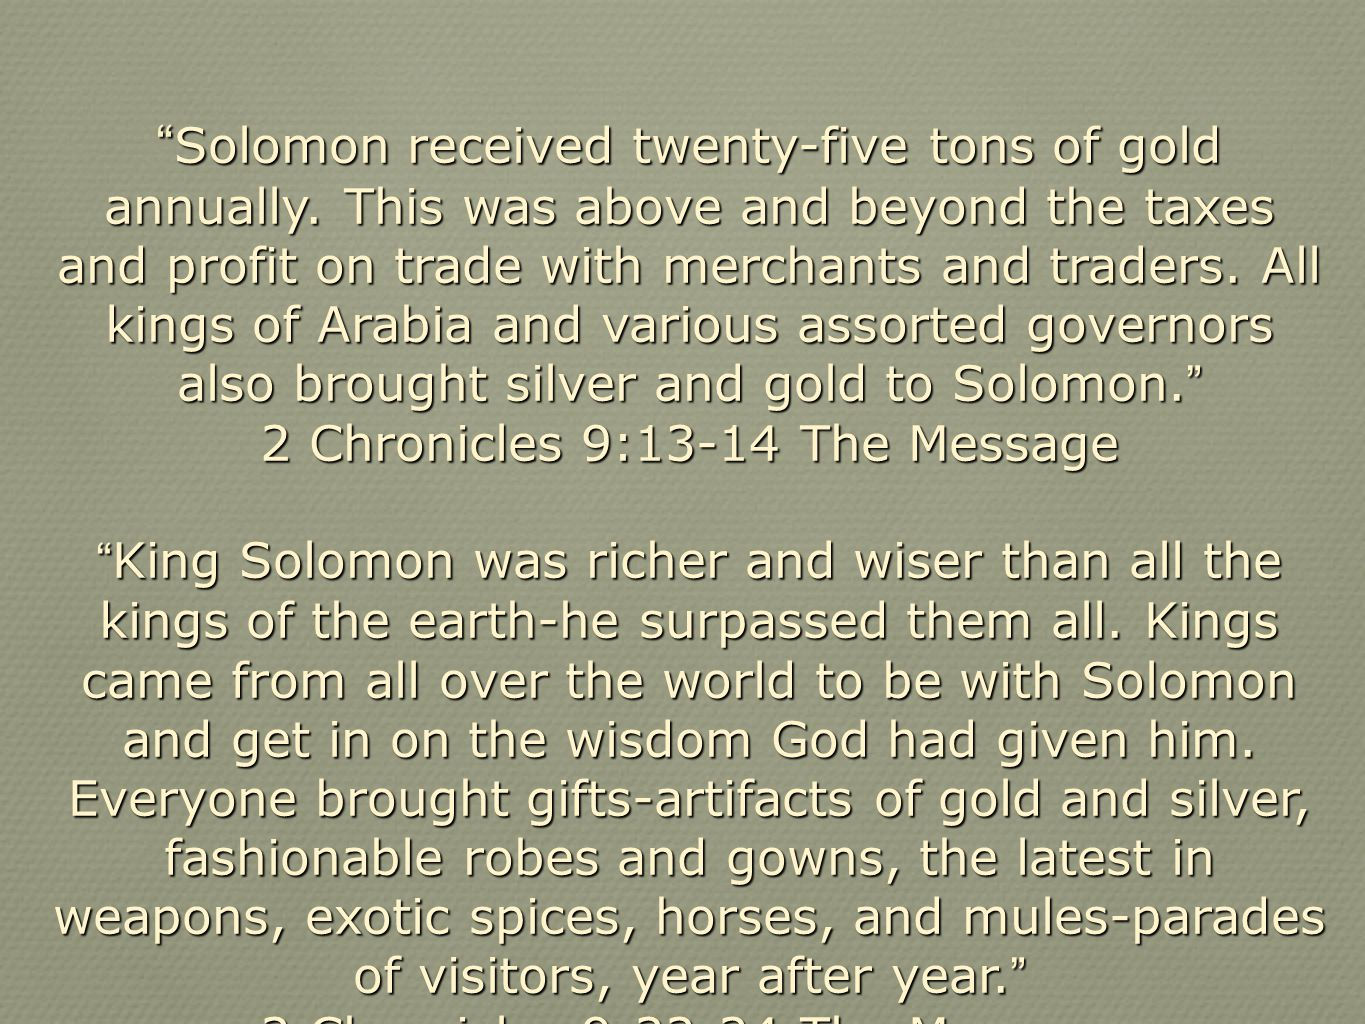 Solomon received twenty-five tons of gold annually